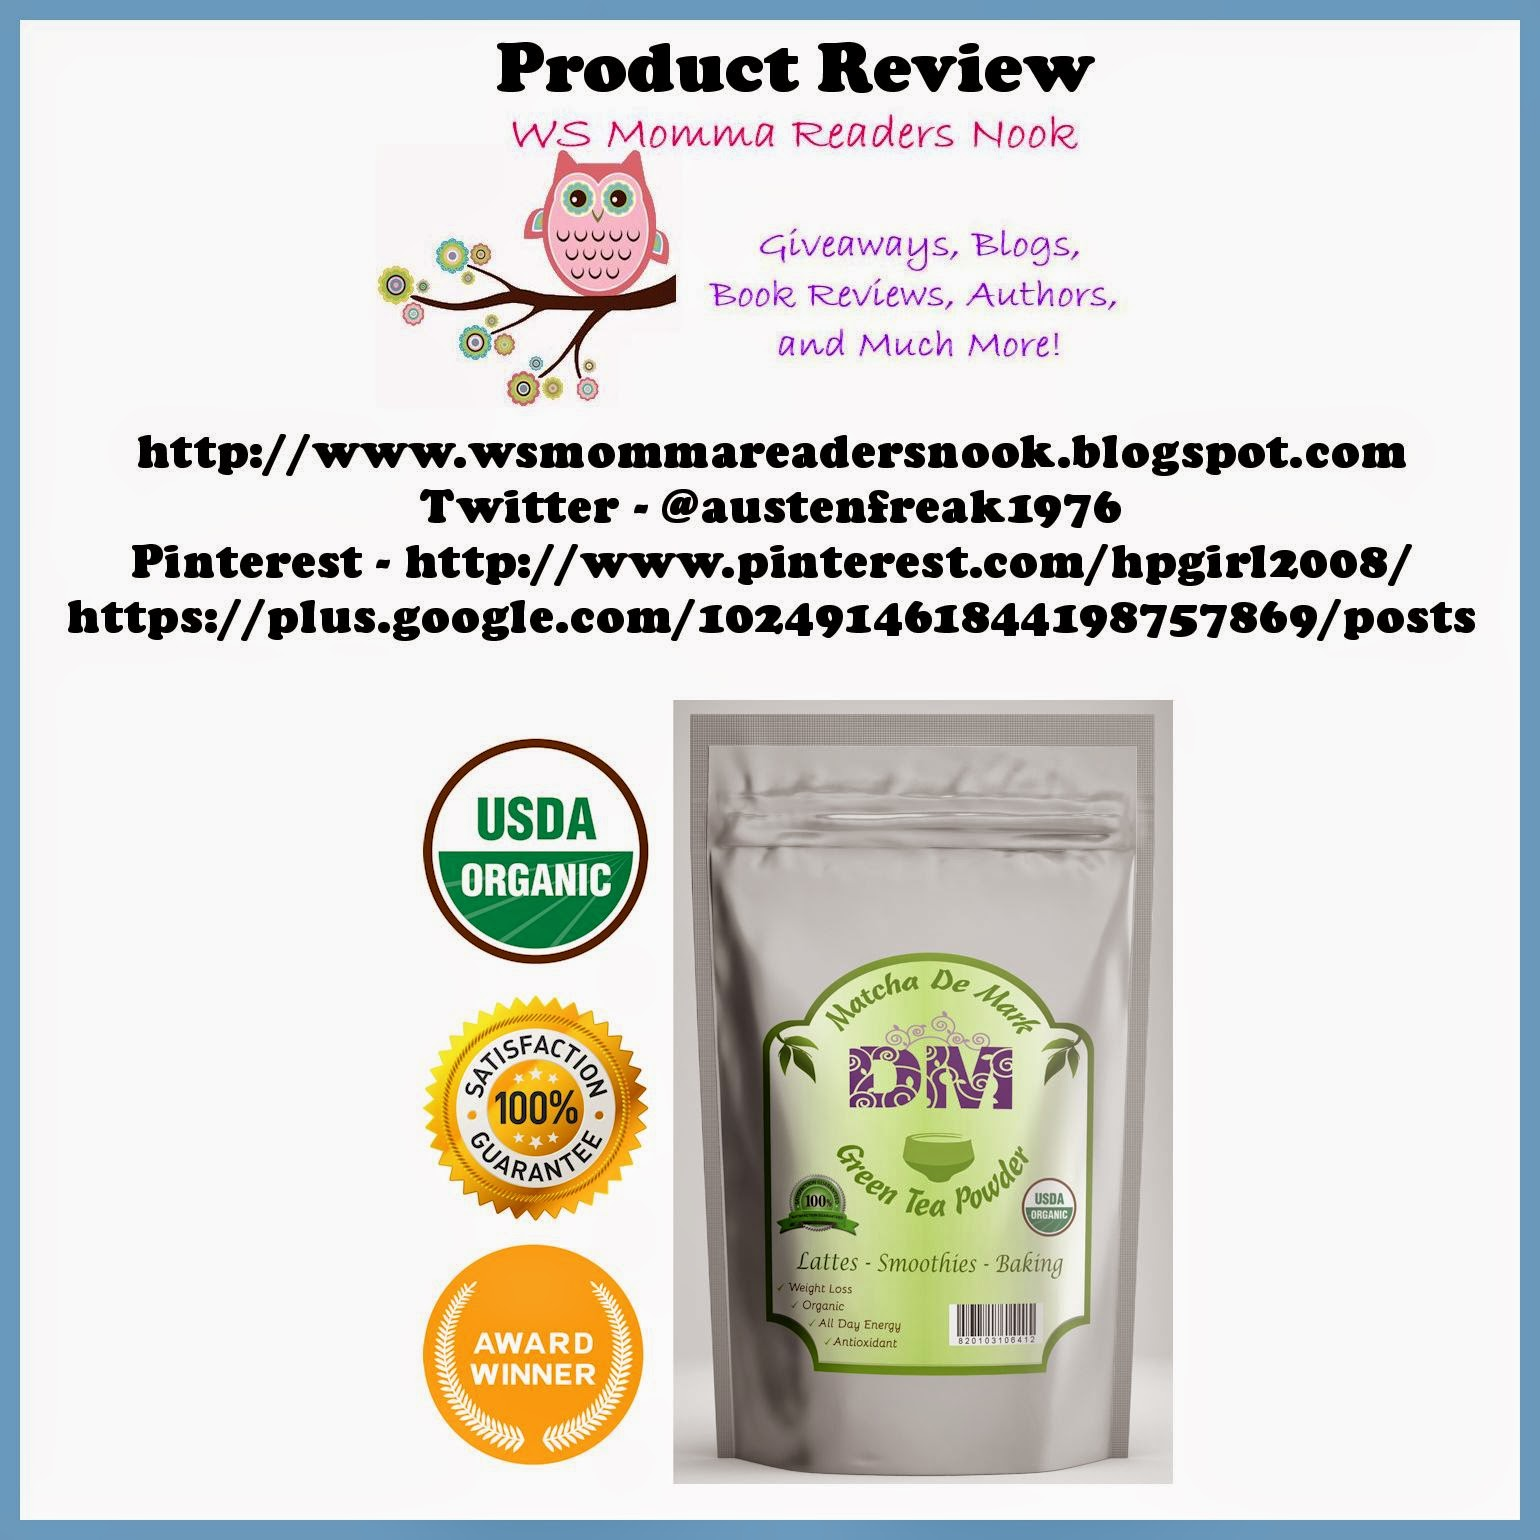 http://www.amazon.com/Matcha-Green-Tea-Powder-Organic/dp/B00KTHOFPK/ref=sr_1_1?ie=UTF8&qid=1412533129&sr=8-1&keywords=matcha+de+mark